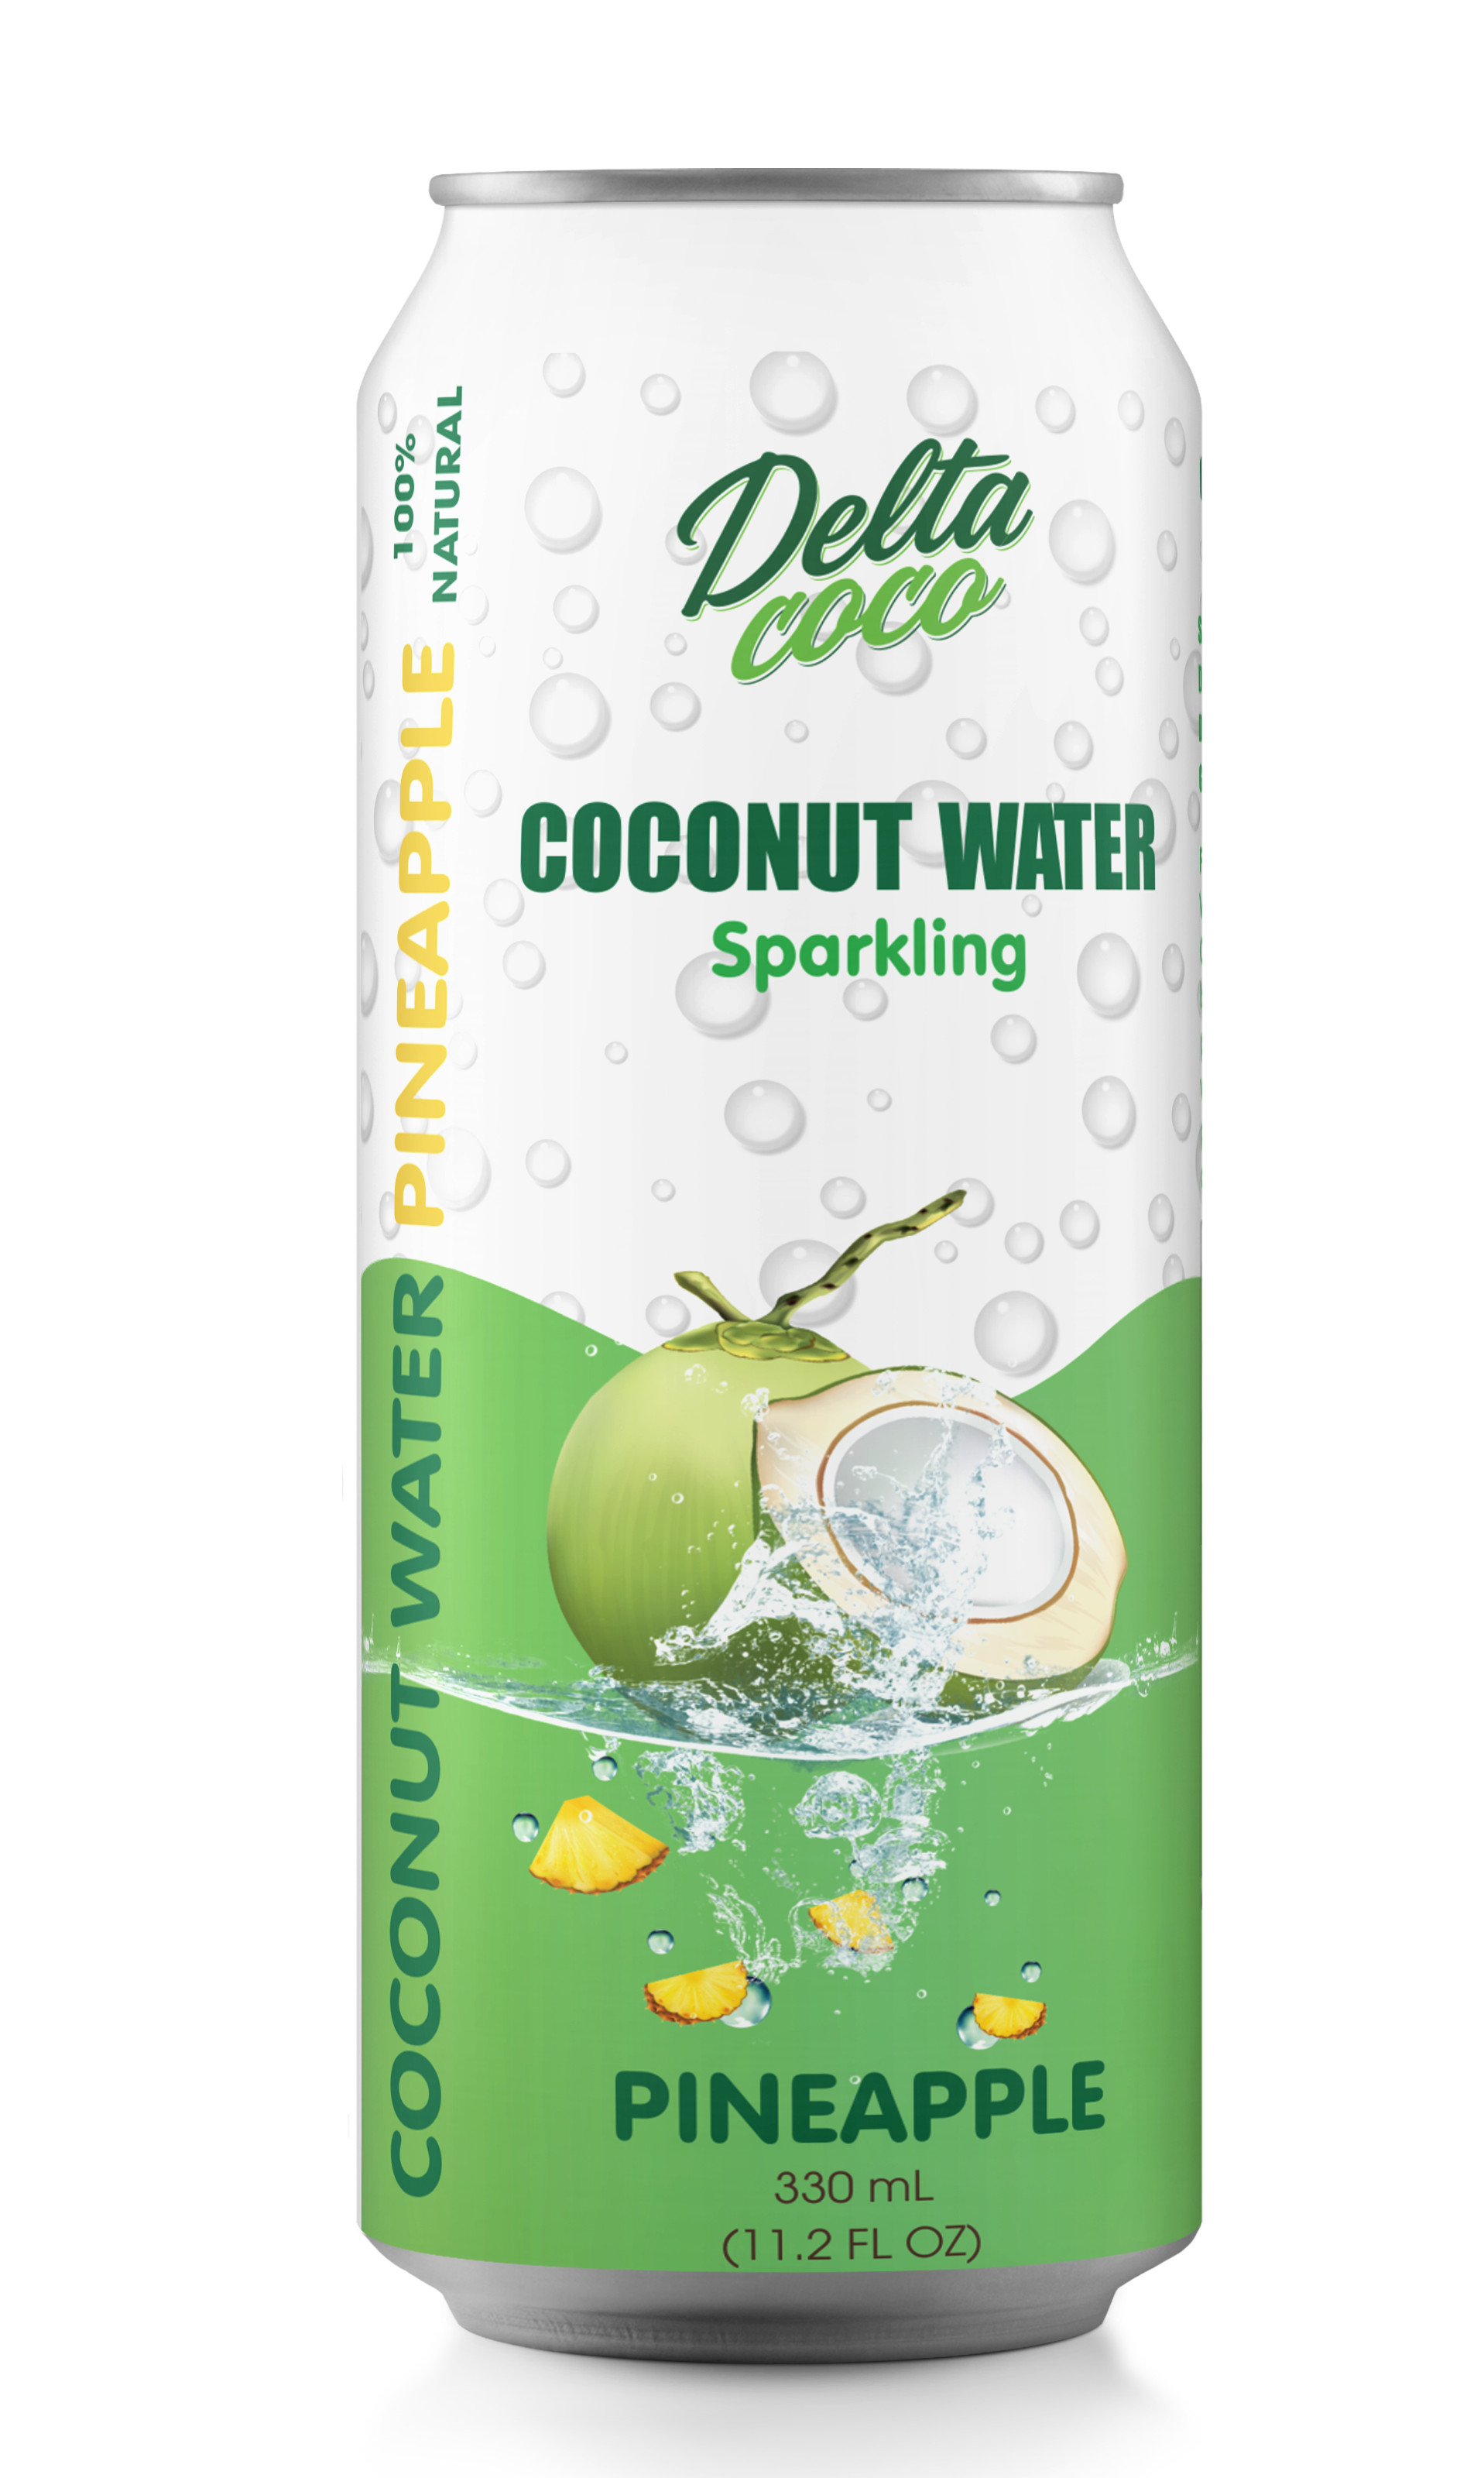 SPARKLING COCONUT WATER